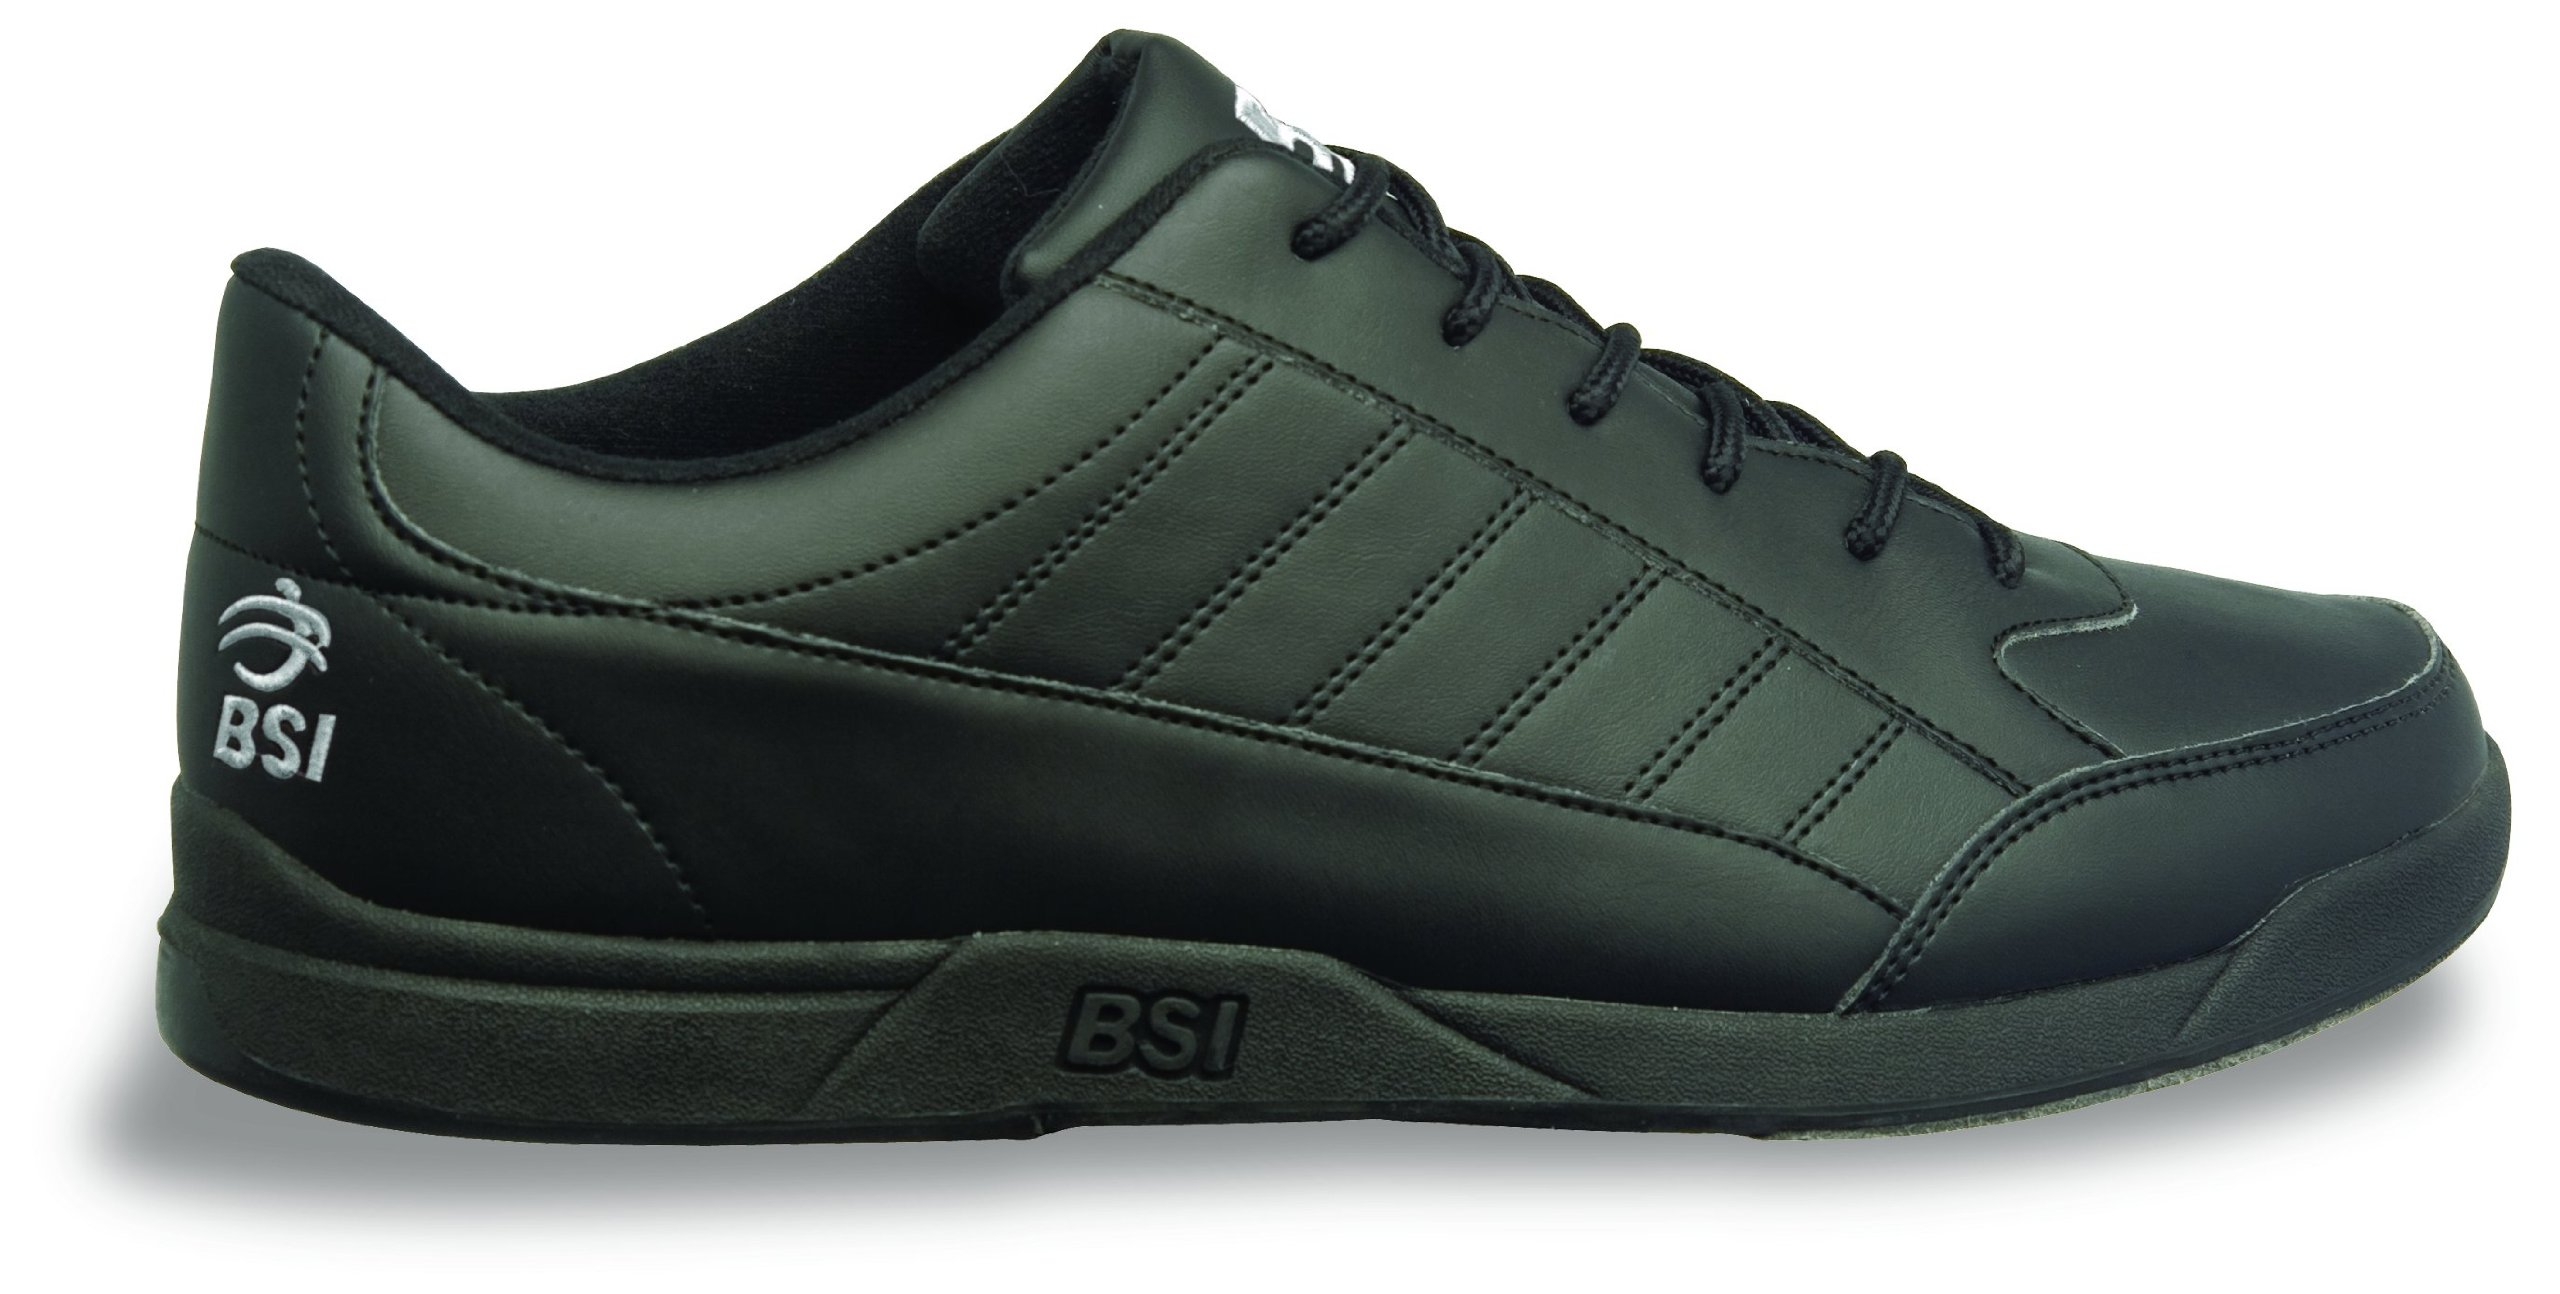 BSI Men's Basic #521 Bowling Shoes, Black, Size 7.0 by BSI